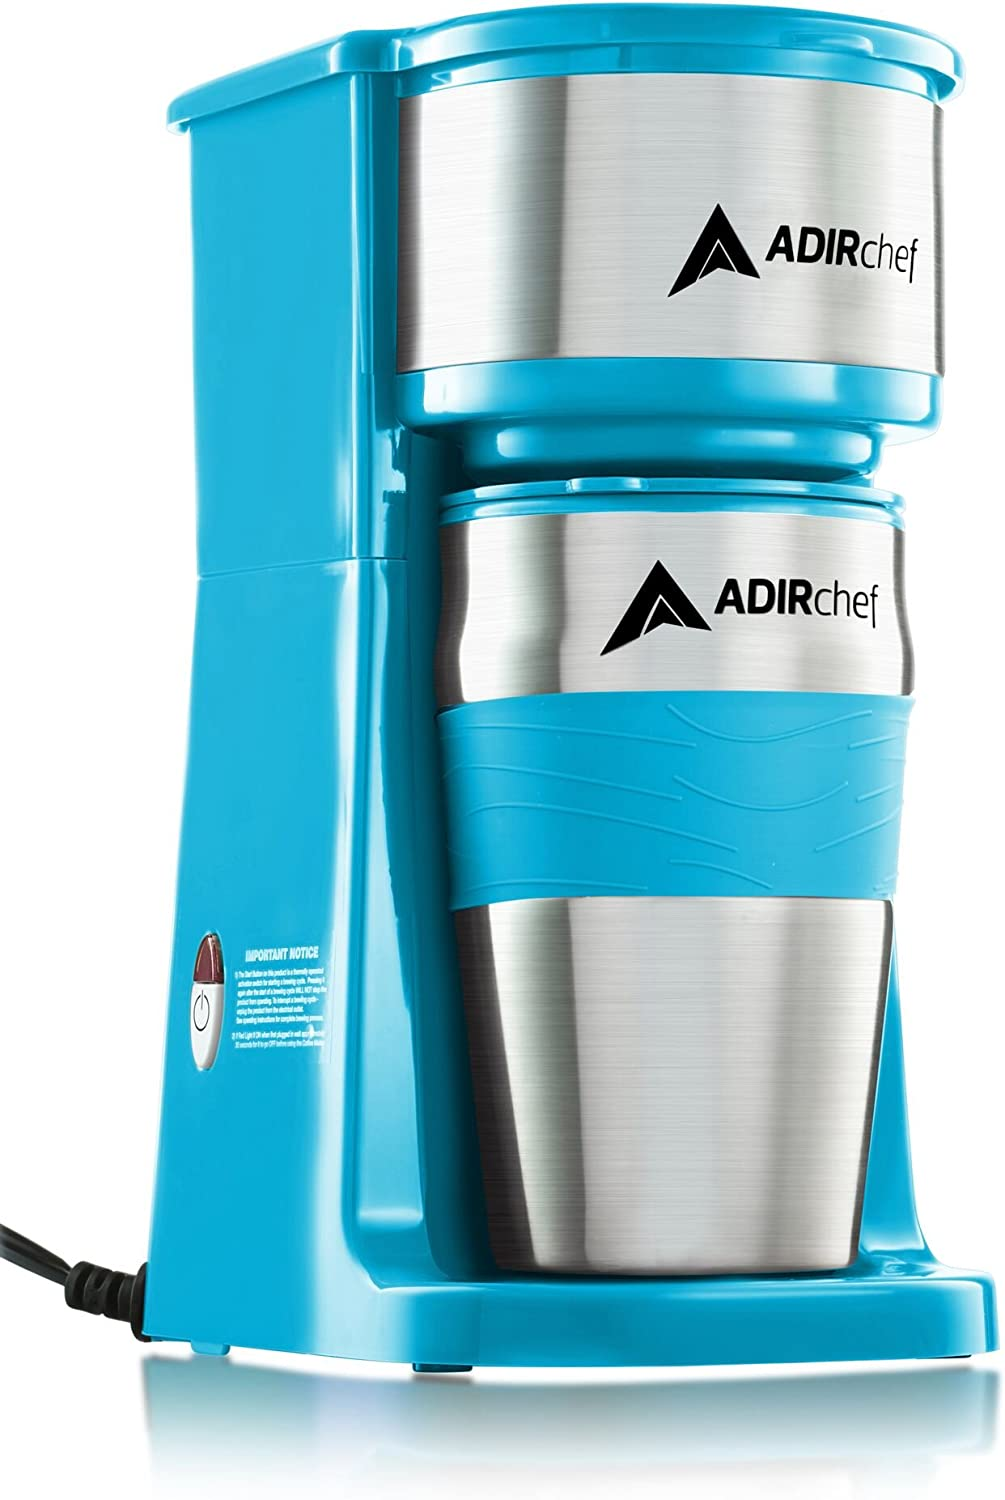 AdirChef Grab N Go Personal Coffee Maker with 15 oz. Travel Mug Crystal Blue